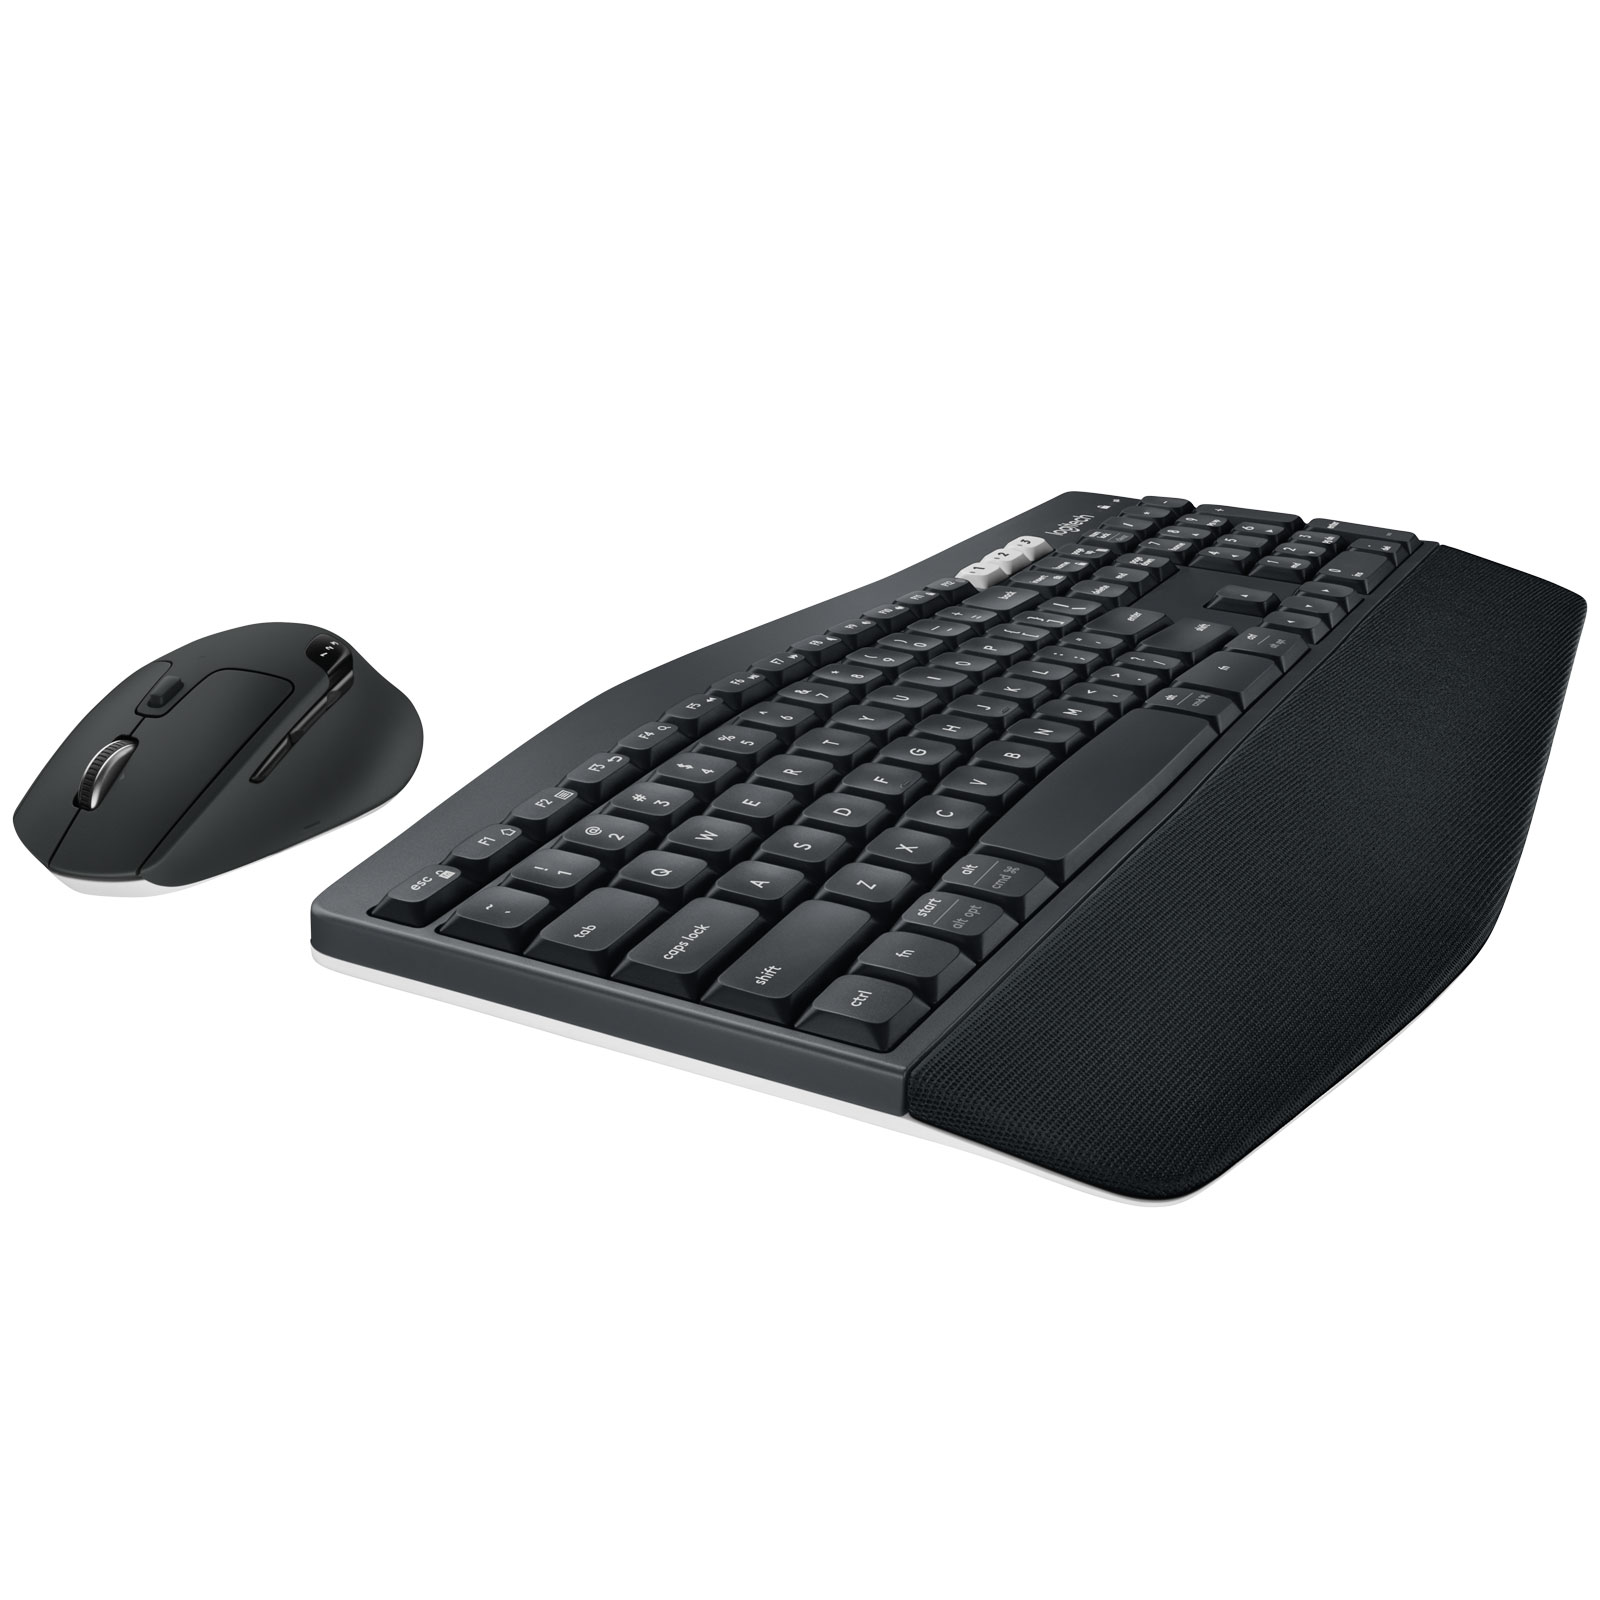 Logitech MK850 Performance - Pack Clavier/Souris - Cybertek.fr - 2